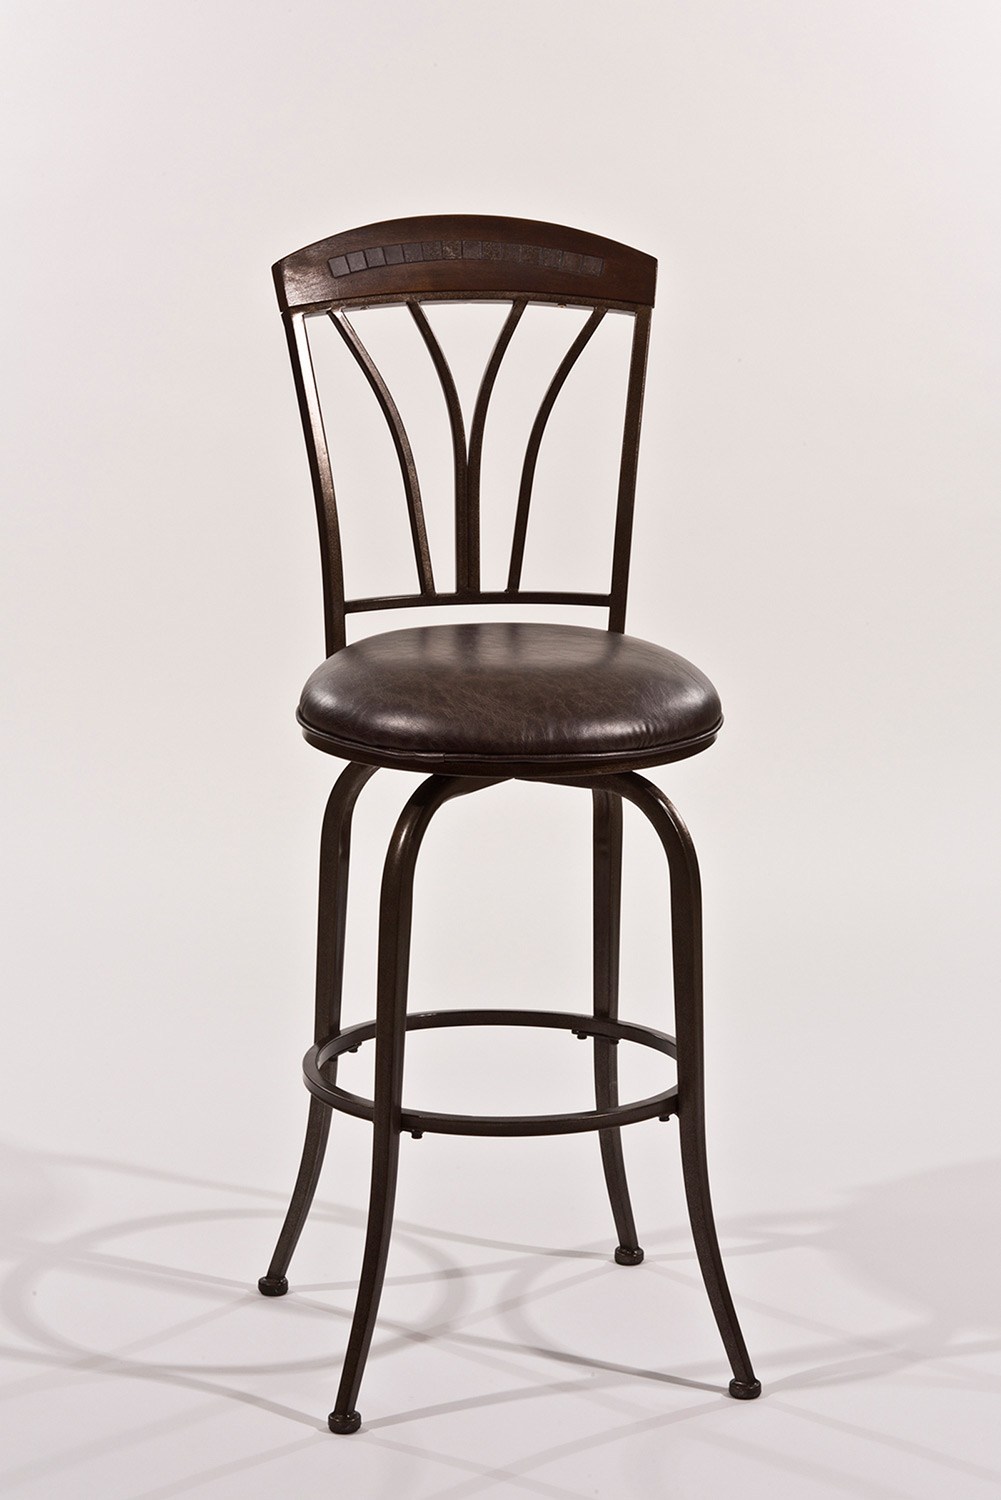 Hillsdale Marano Swivel Bar Stool - Speckled Bronze Pewter - Charcoal Faux Leather